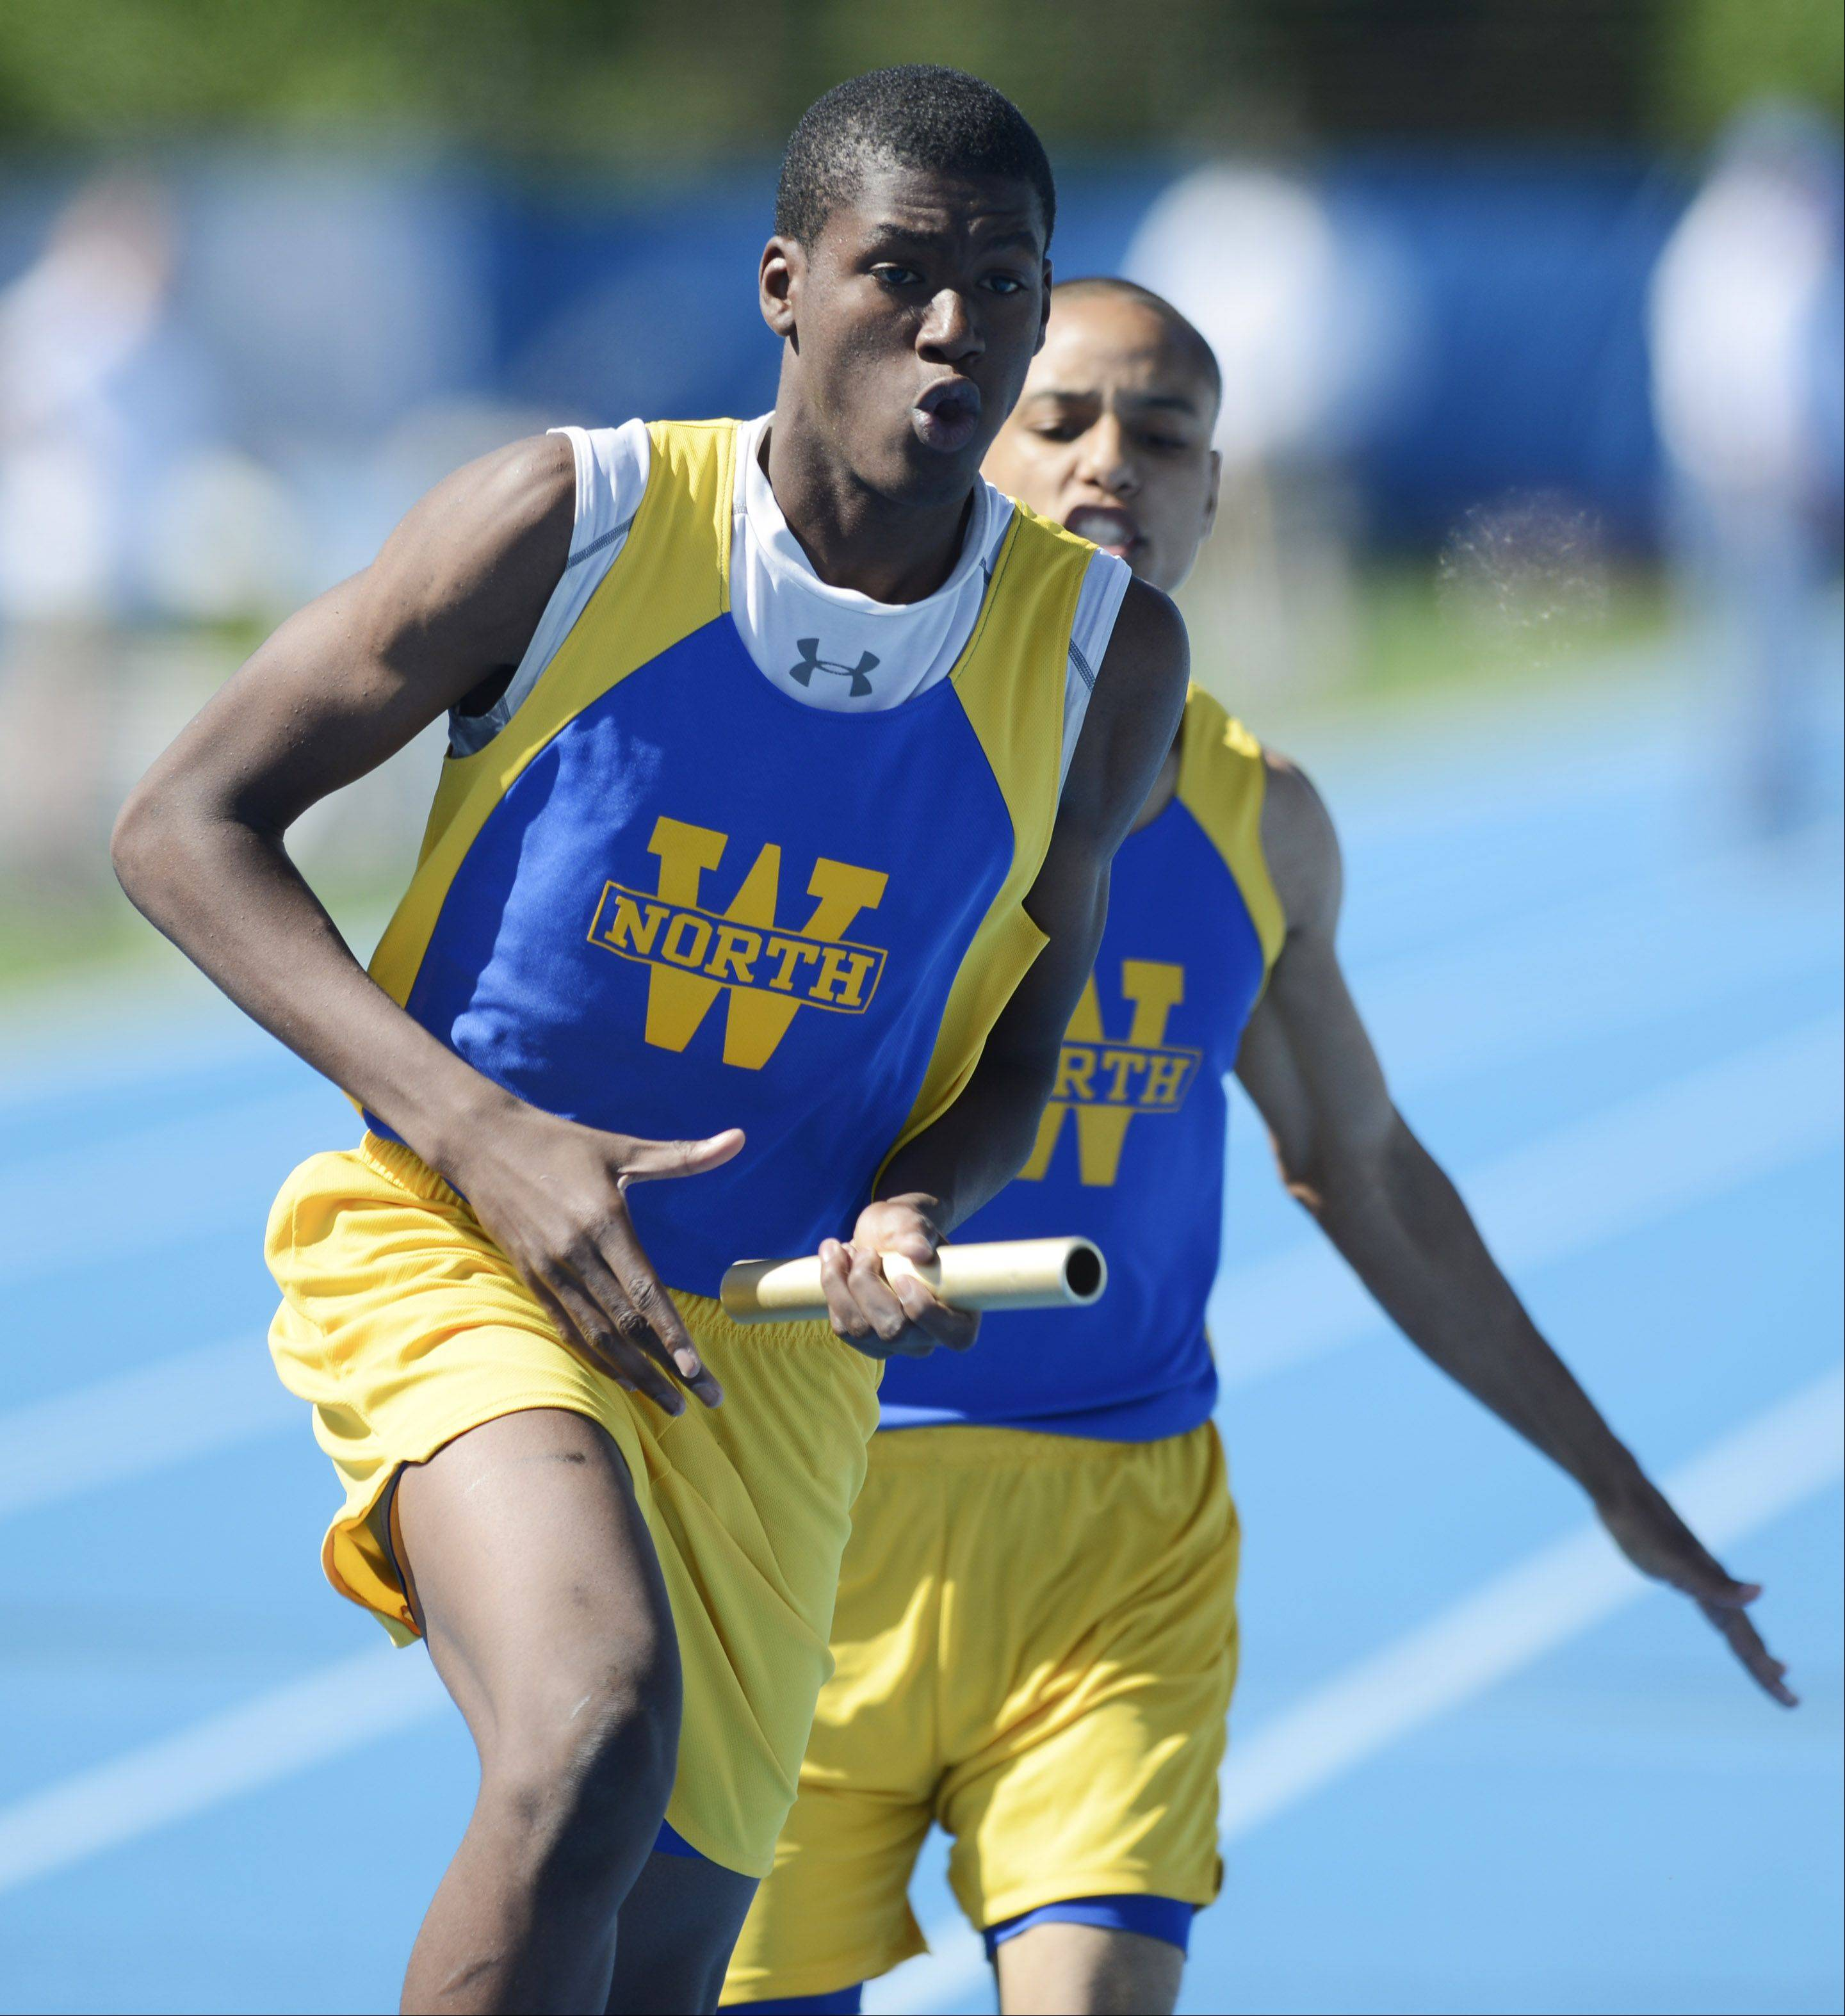 Wheaton North's Steven Connor, front, takes the baton from teammate Nehemiah Heckler in the Class 3A 4x400-meter relay during the boys state track preliminaries in Charleston Friday.